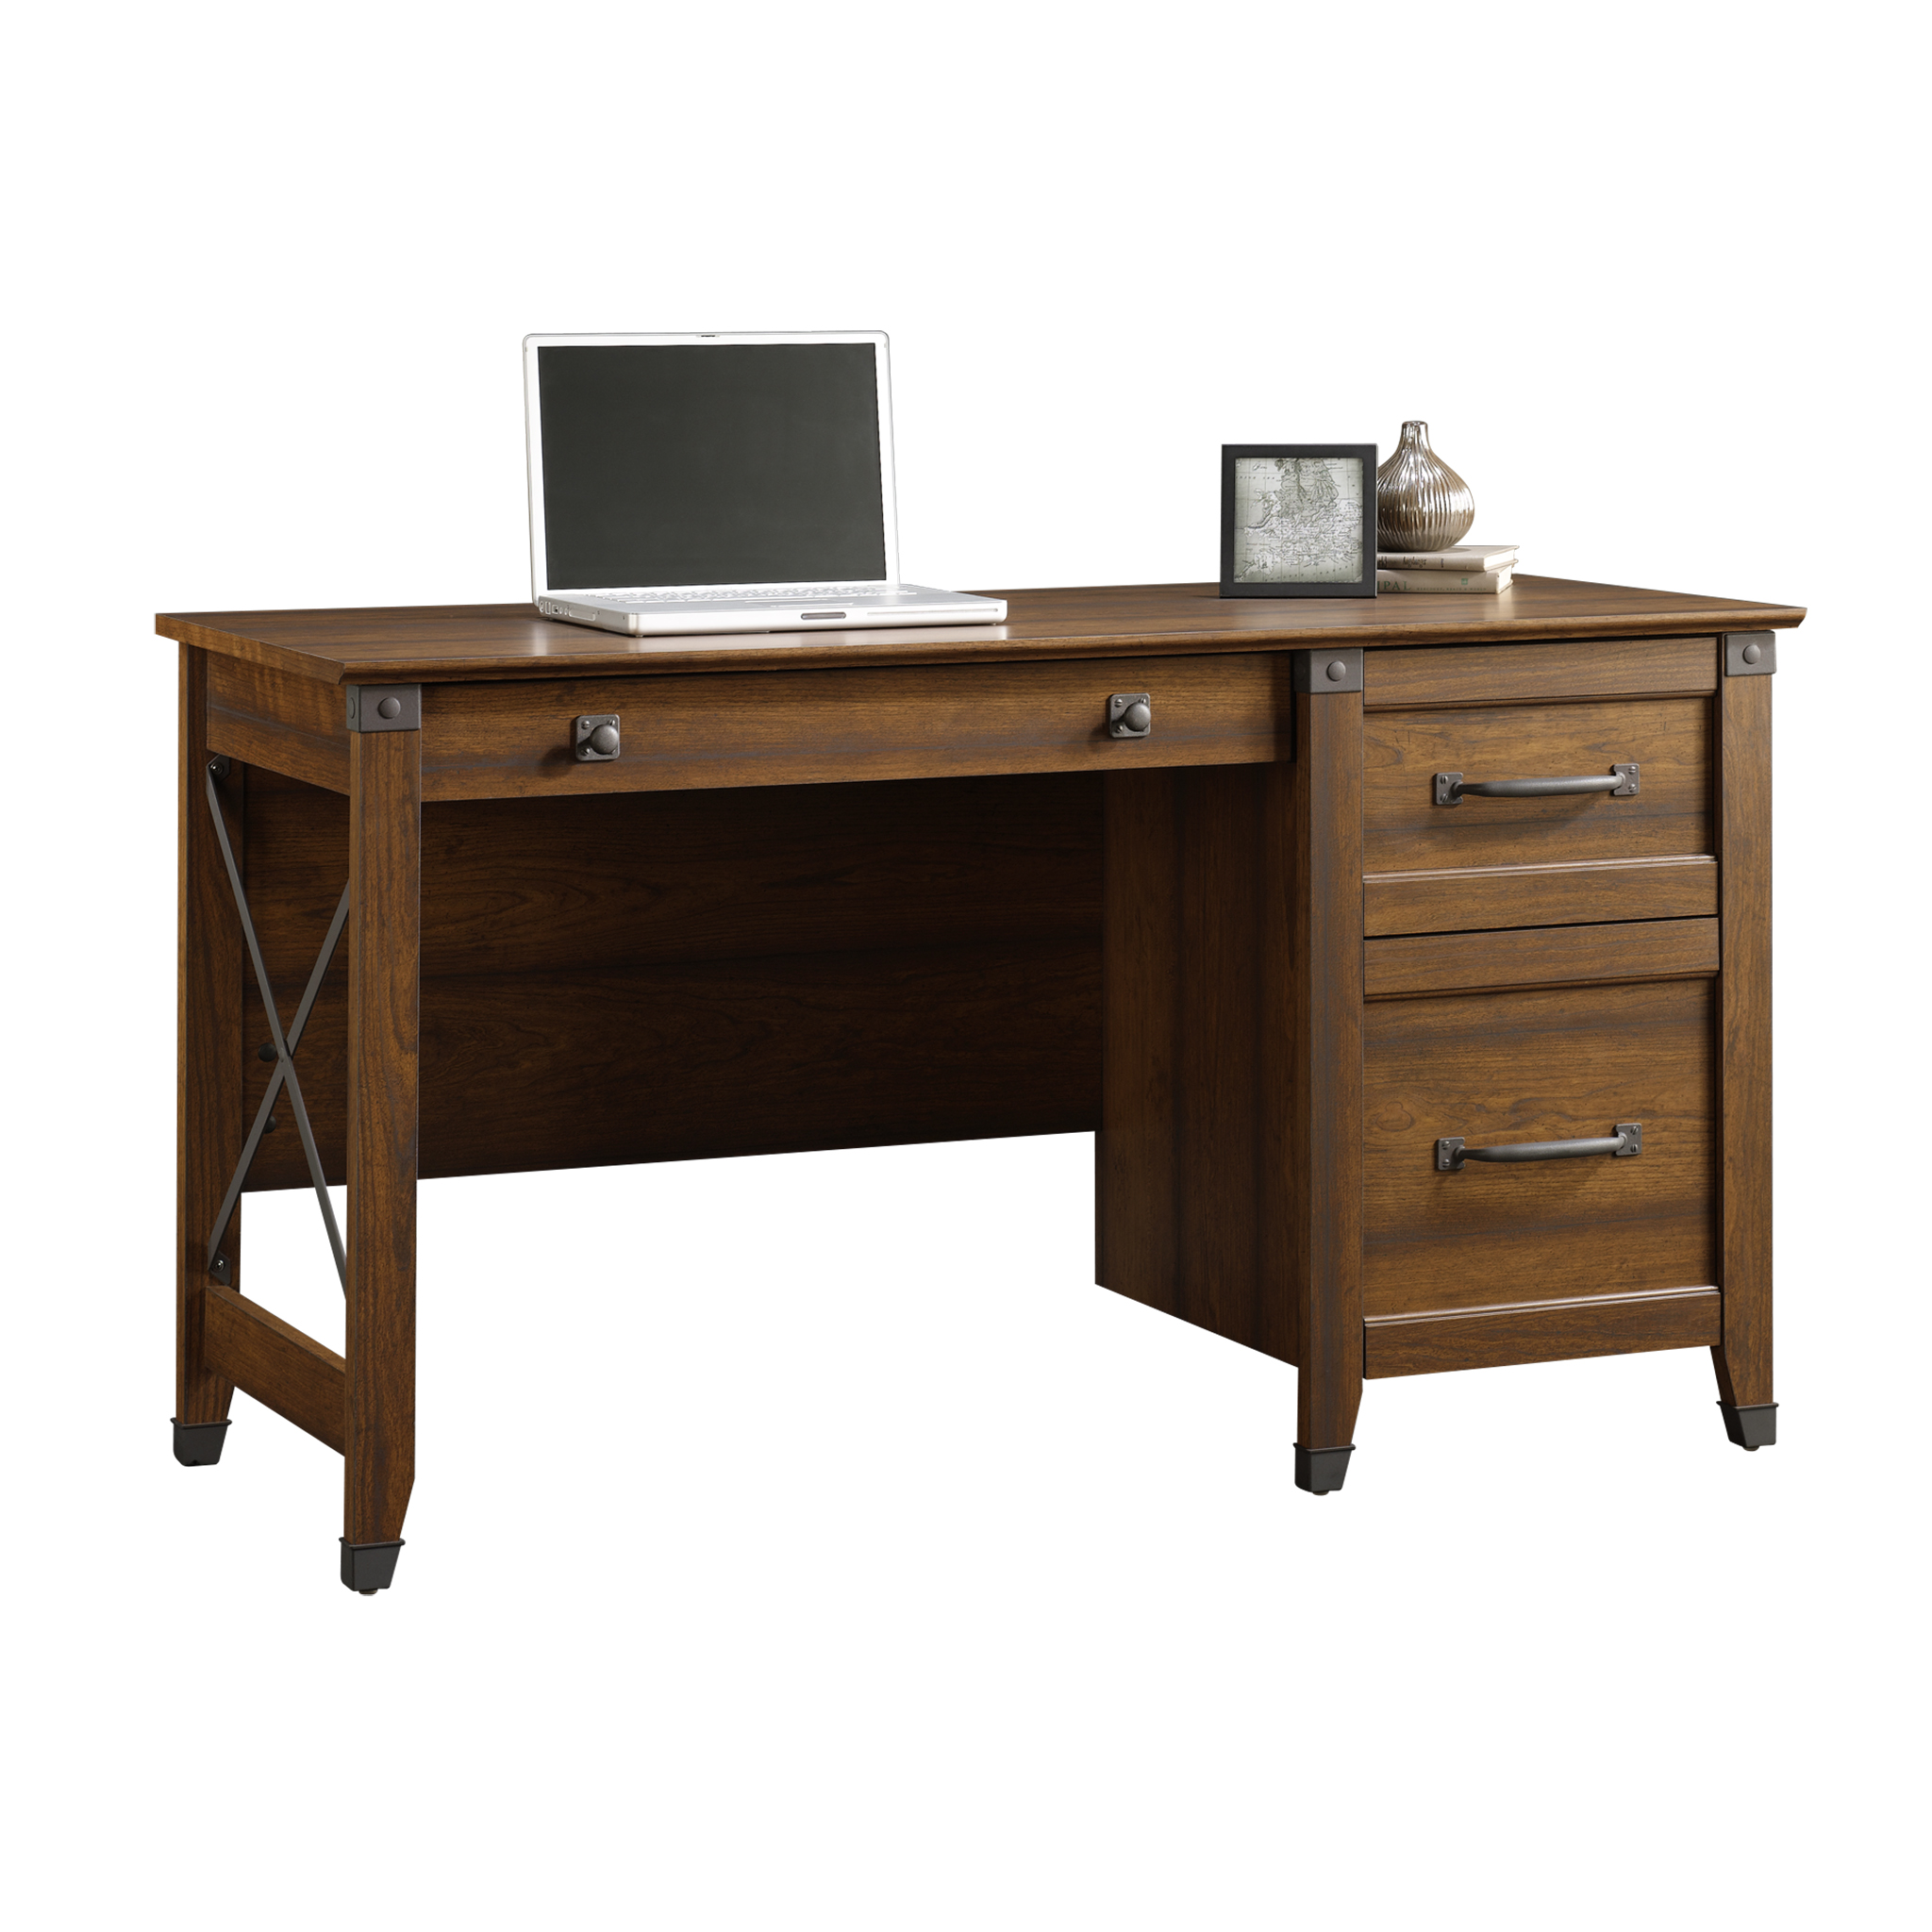 Sauder Carson Forge Desk With 3 Drawers Washington Cherry